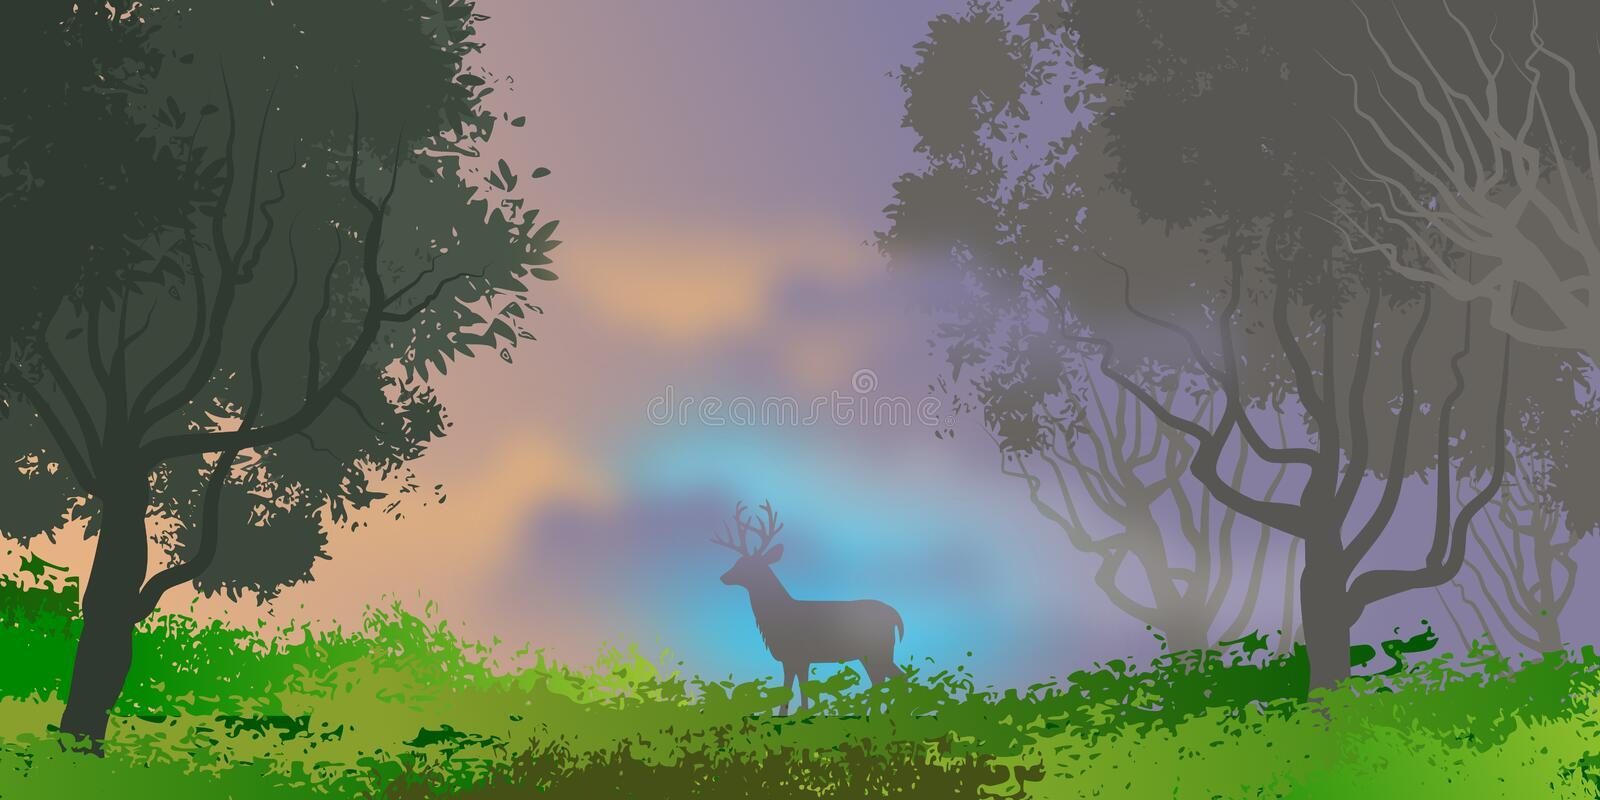 Natural landscape with grove and trees in the foreground. Dense forest. Illustration. vector illustration